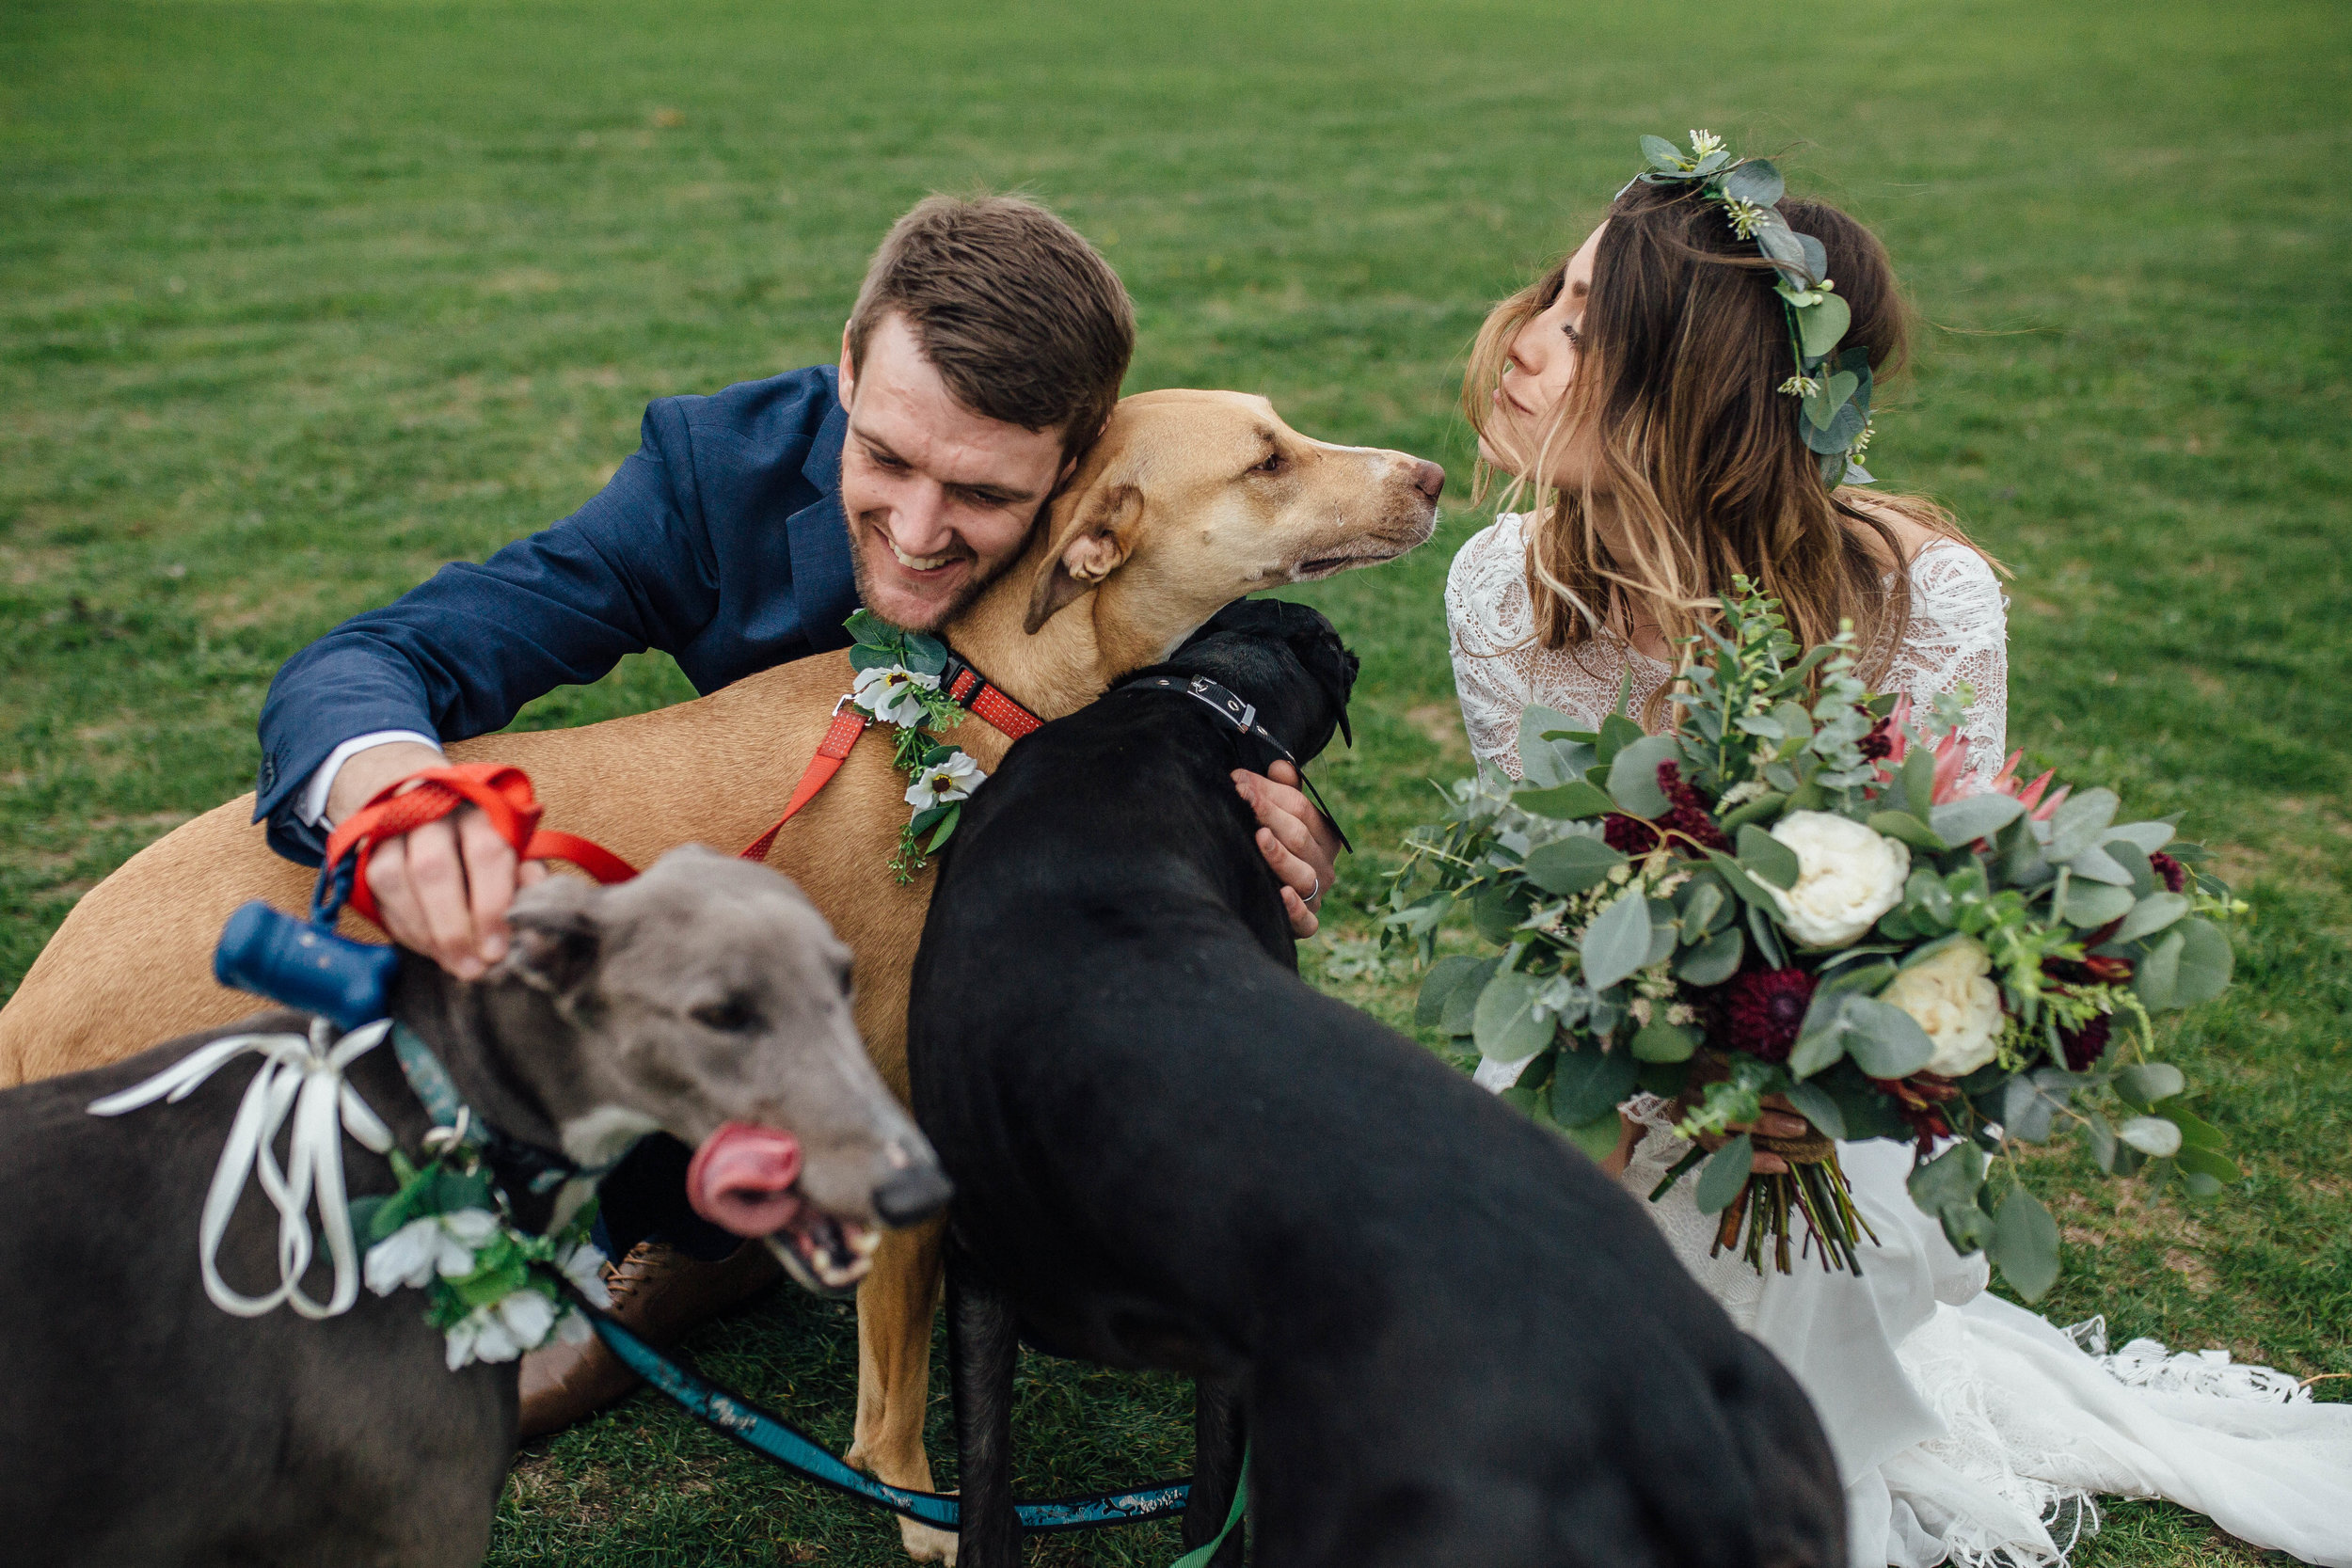 Sheffield Yorkshire Documentary Wedding Photographer Dogs at Weddings